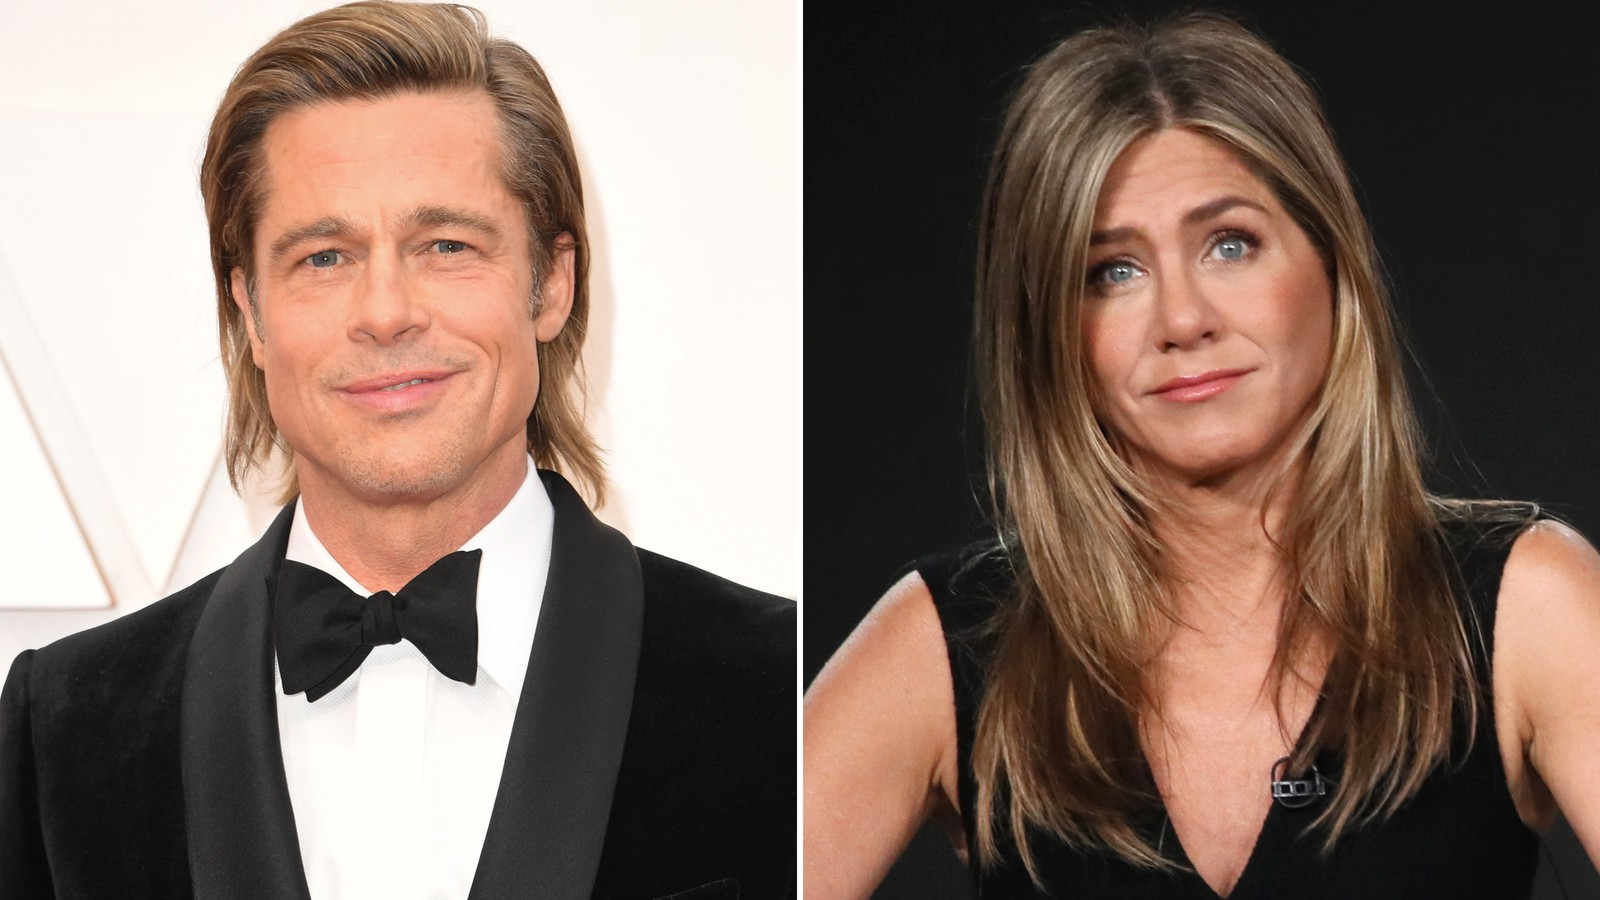 Jennifer Aniston and Brad Pitt reunited again, this time for a good cause